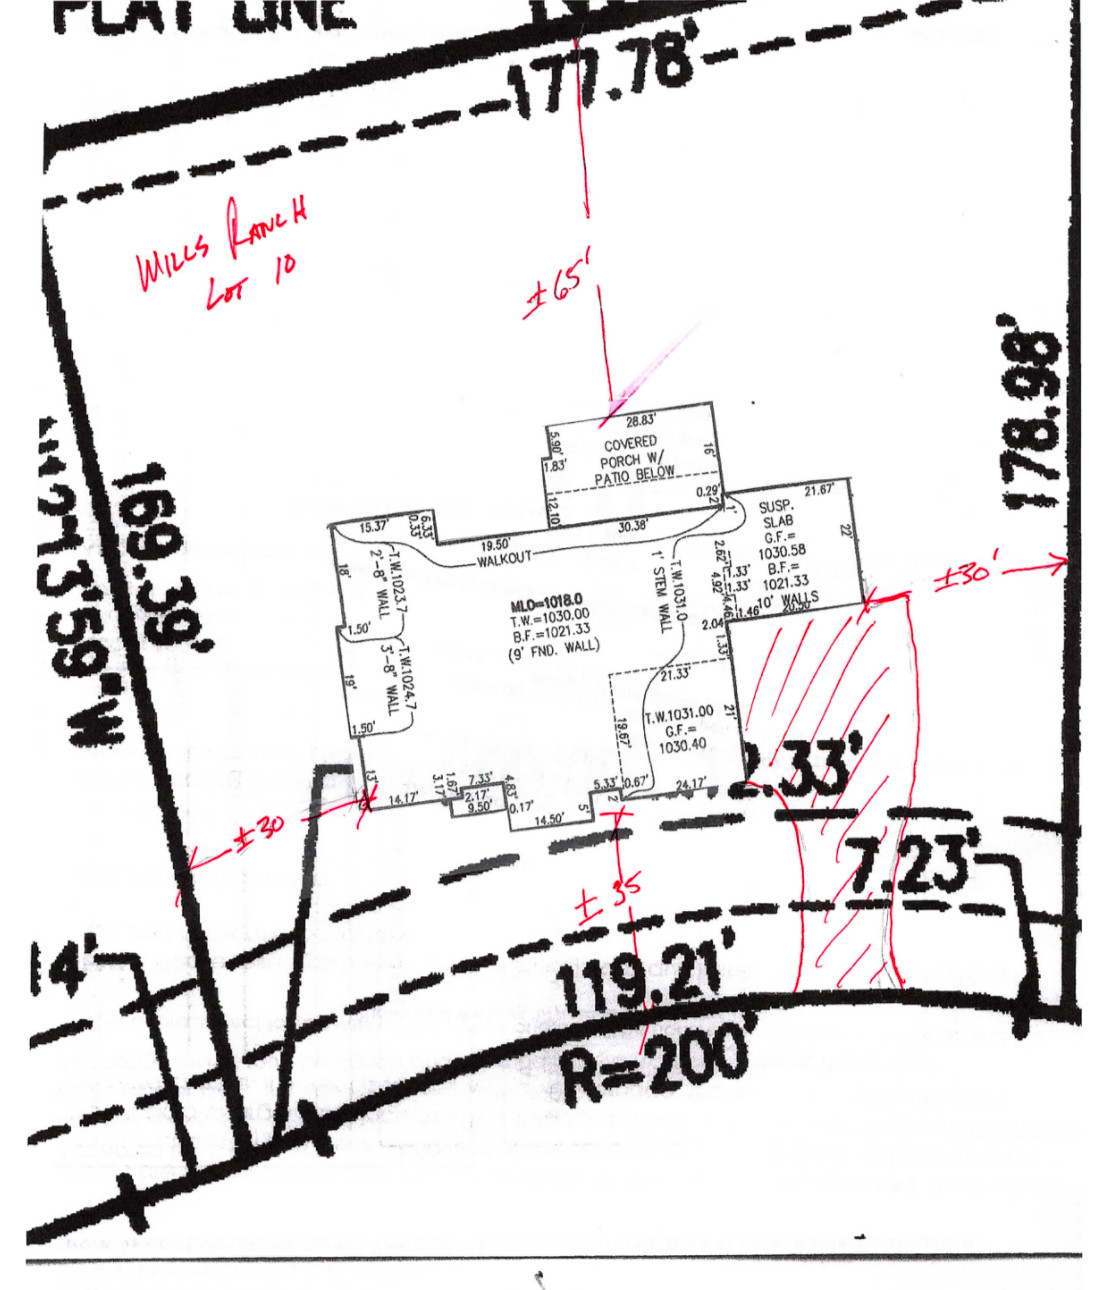 Mills Ranch Lot 10 16904 Bond St OP, KS 66221 For Sale